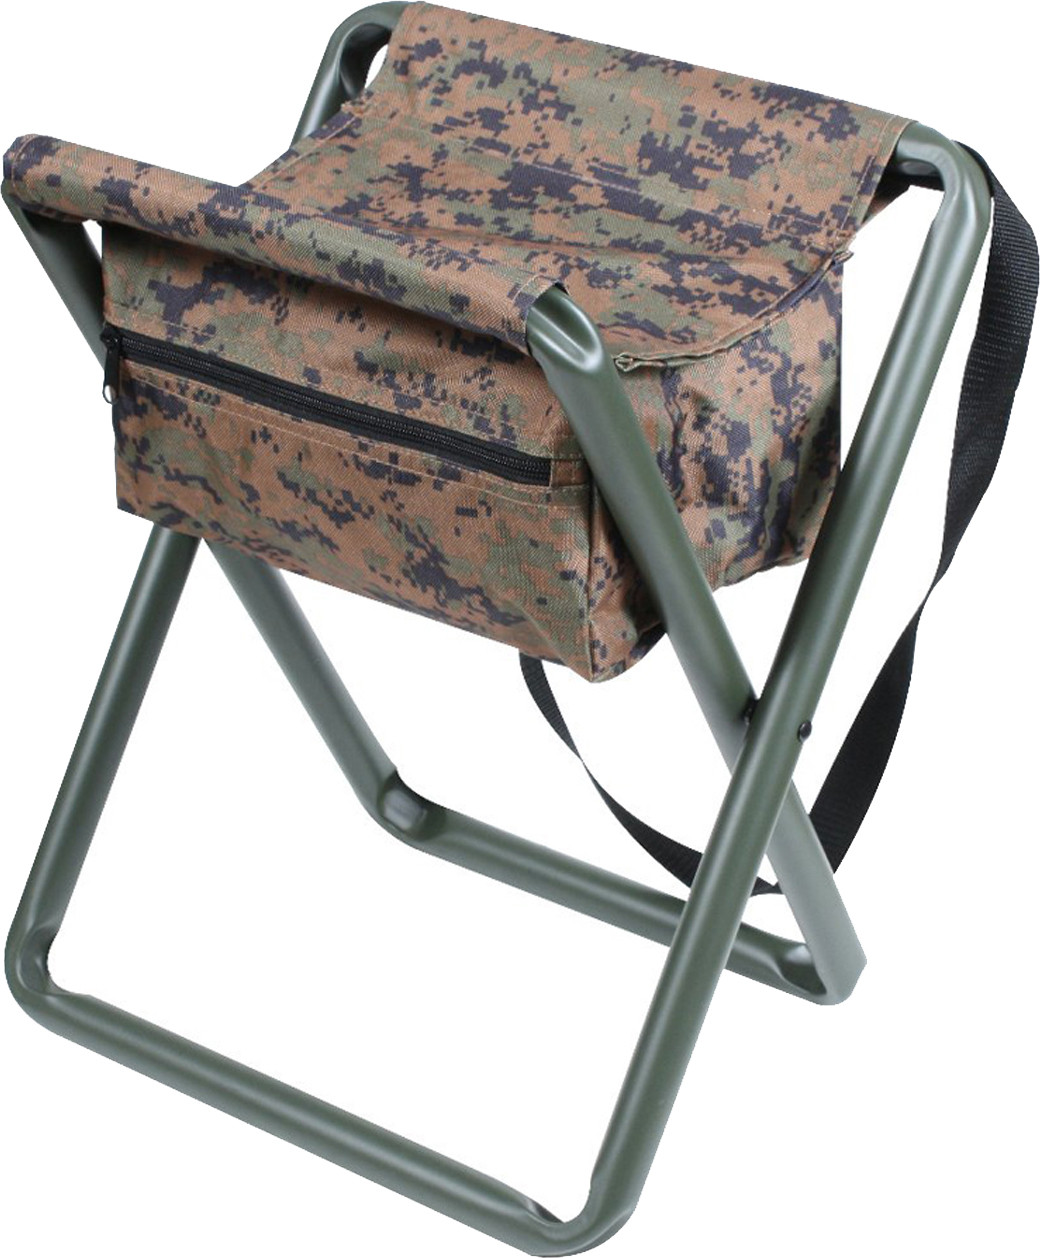 Portable Stool Woodland Digital Camouflage Portable Folding Deluxe Stool